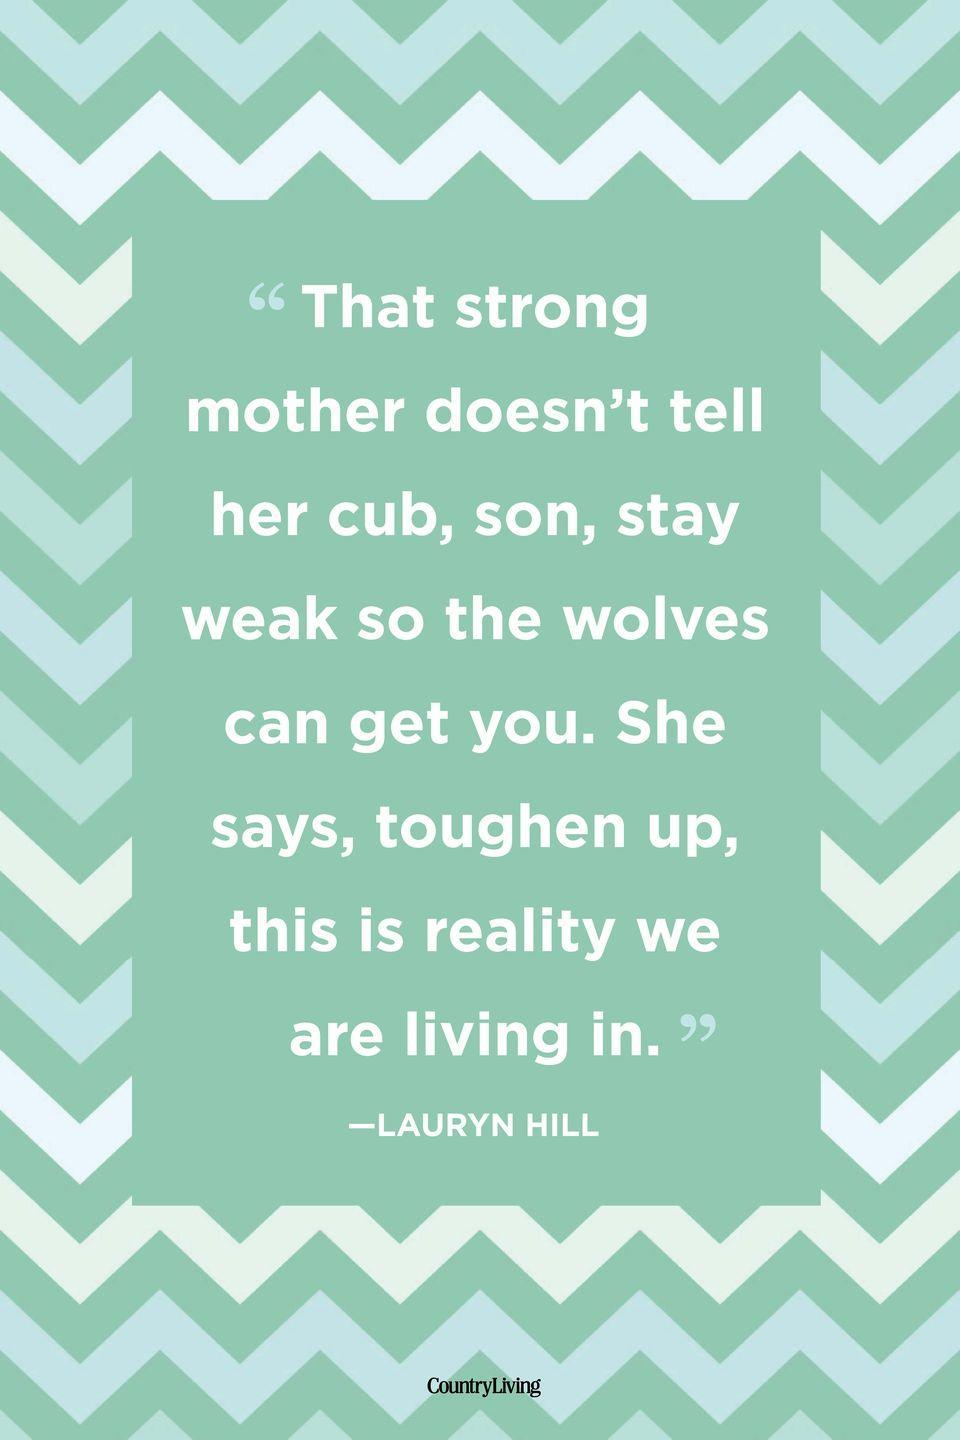 "<p>""That strong mother doesn't tell her cub, son, stay weak so the wolves can get you. She says, toughen up, this is reality we are living in.""</p>"